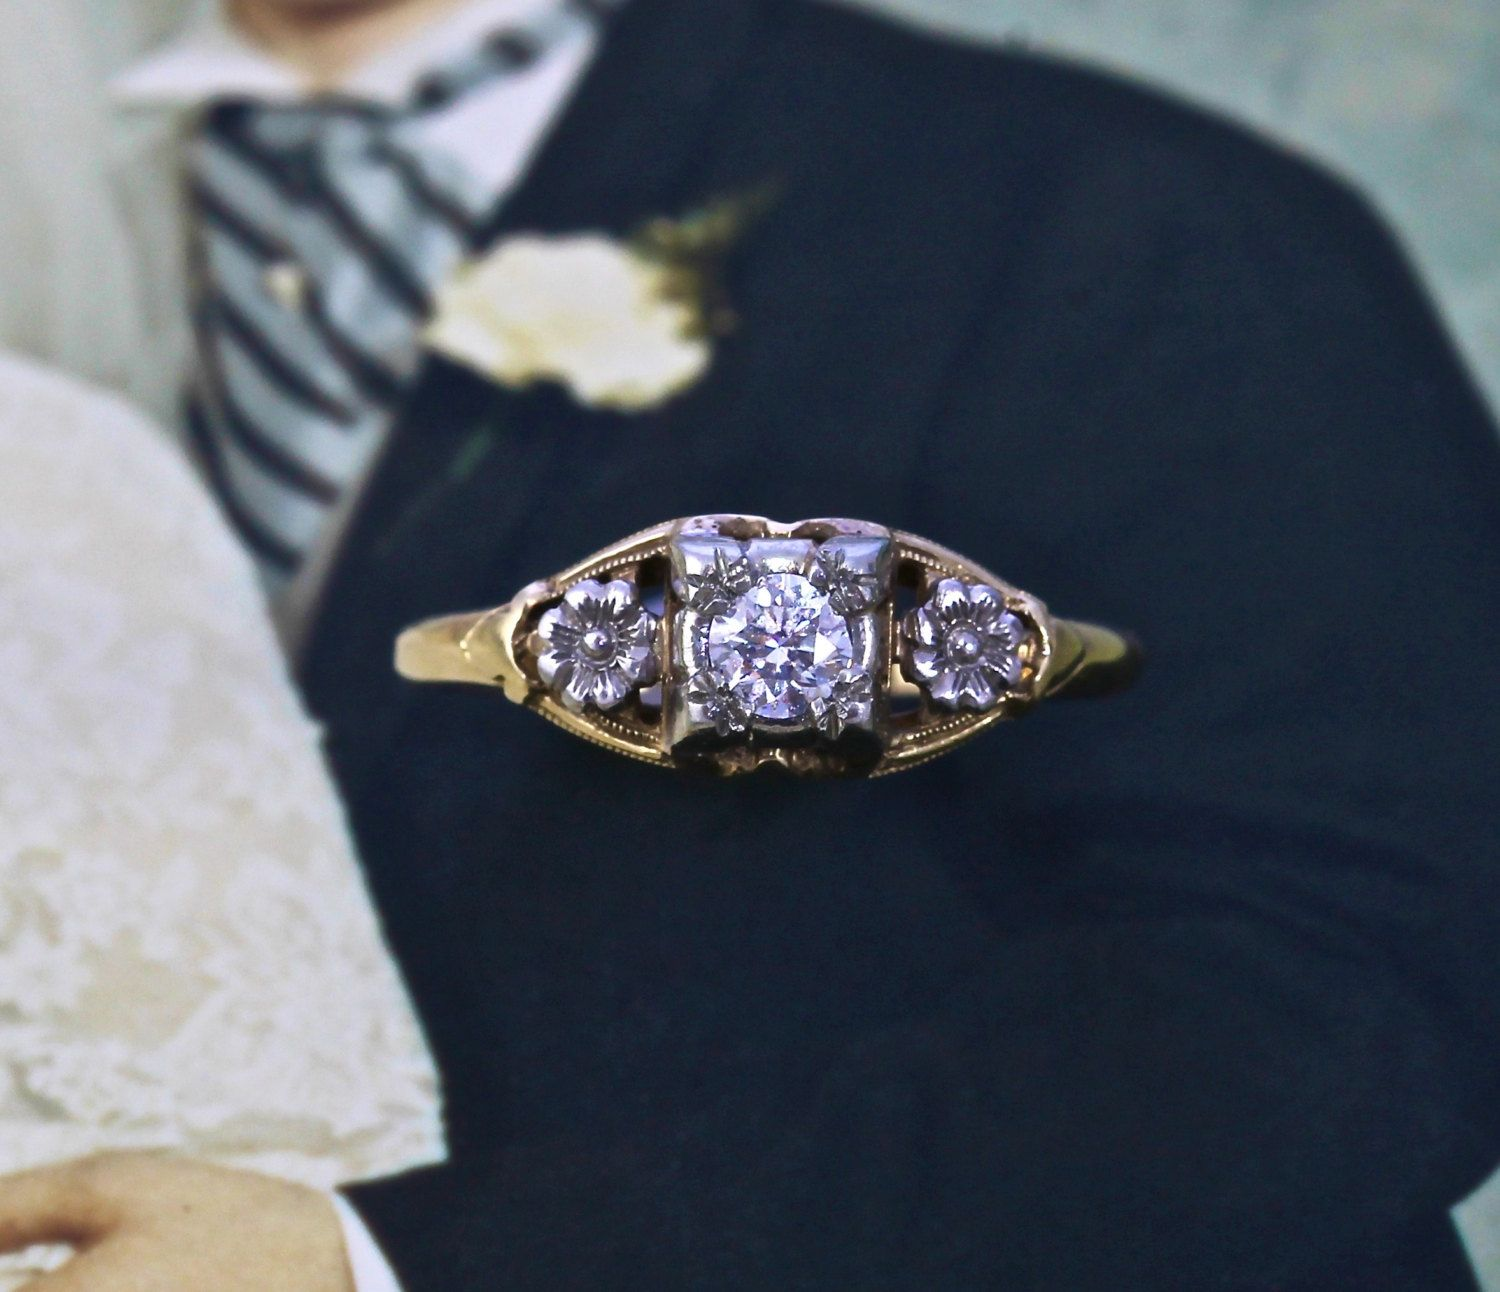 Vintage Diamond Engagement Ring, 14k Carved Dogwood Blossom Flowers, Full Cut VS Clarity F Color, Yellow and White Gold, Circa 1935 Bride by TheEdenCollective on Etsy https://www.etsy.com/listing/190626804/vintage-diamond-engagement-ring-14k